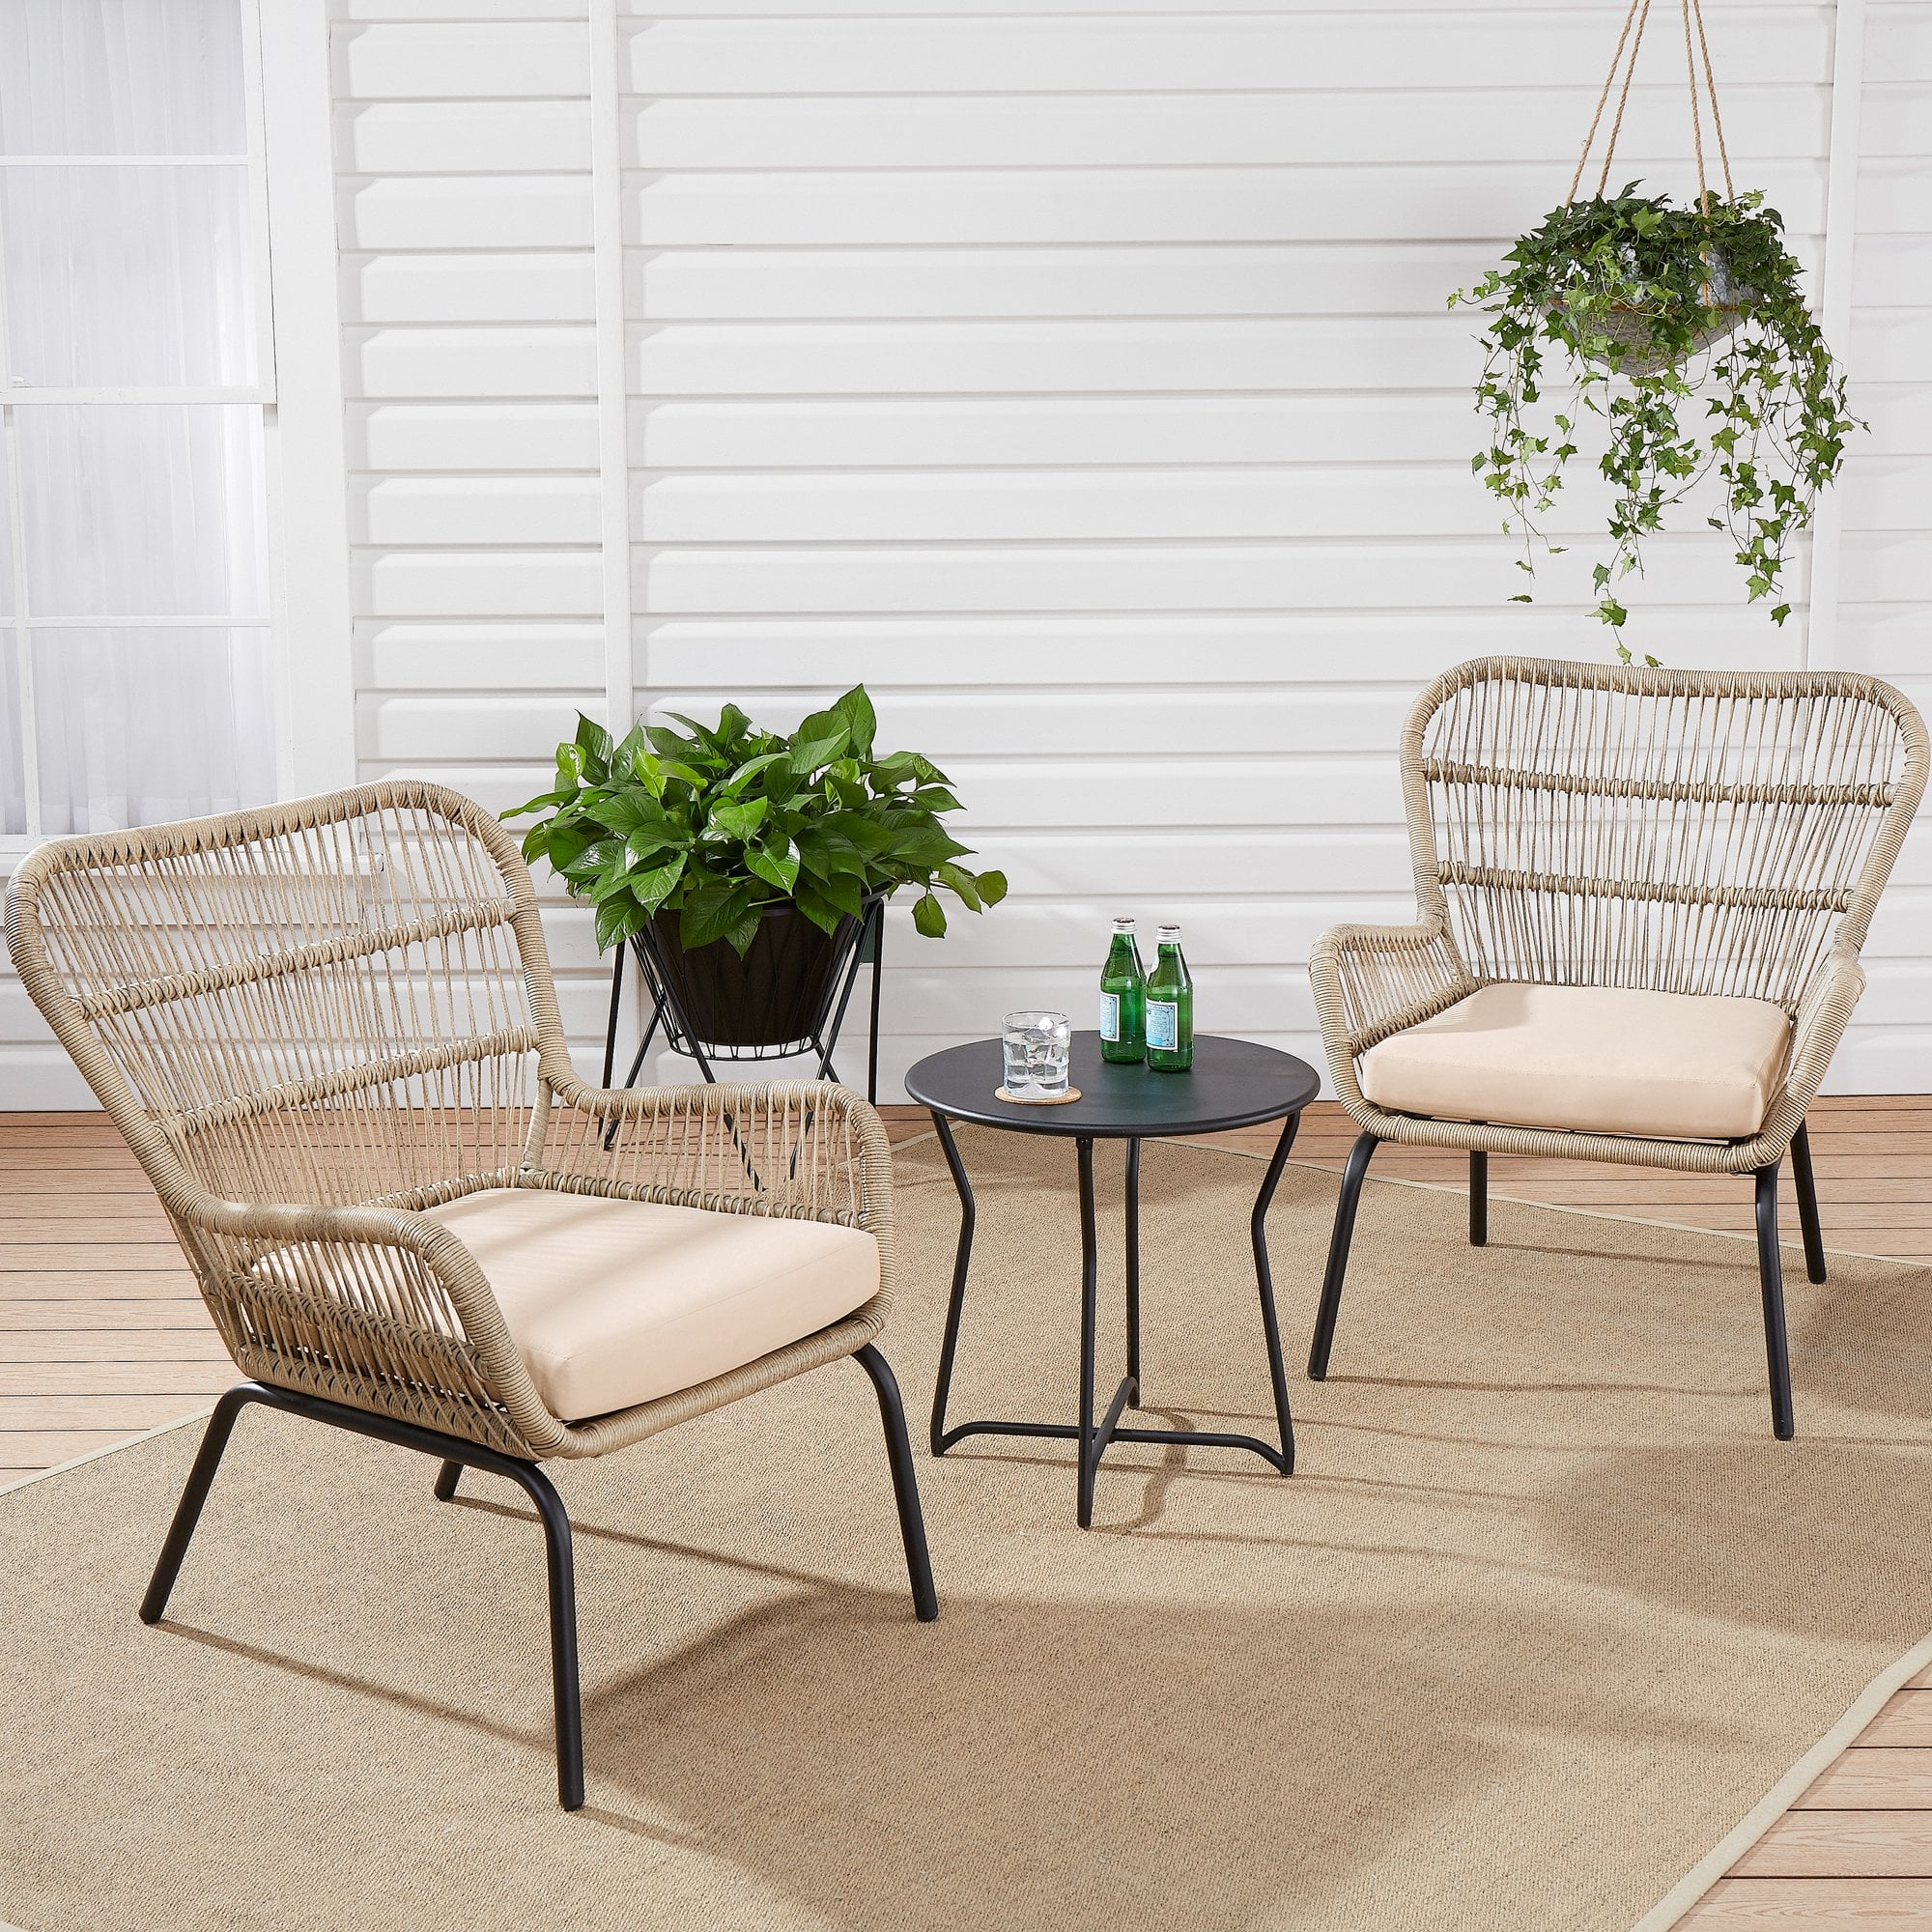 Best Patio Furniture From Walmart Popsugar Home